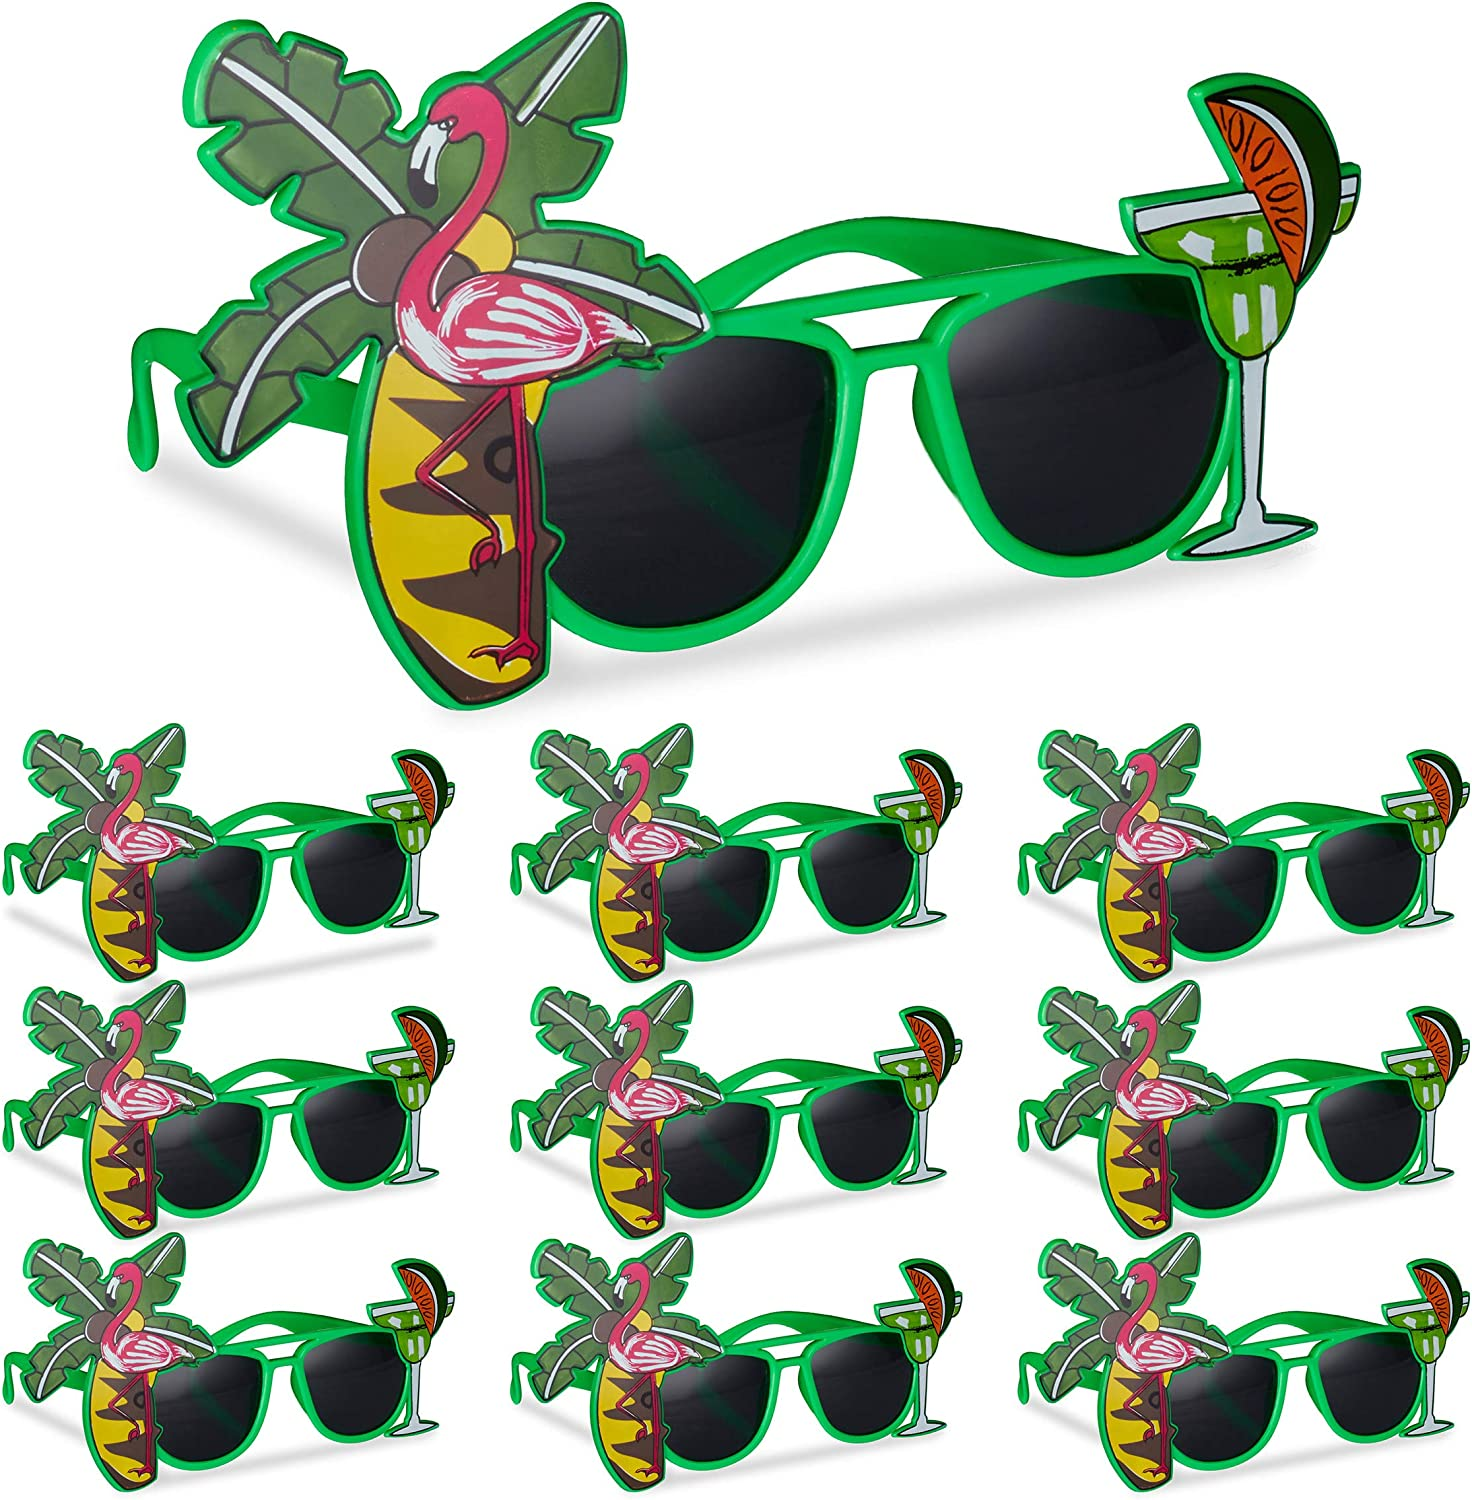 10 x Hawaii Cocktail Party Glasses with Palm Trees, Gag Glasses, Carnival Sunglasses, Green